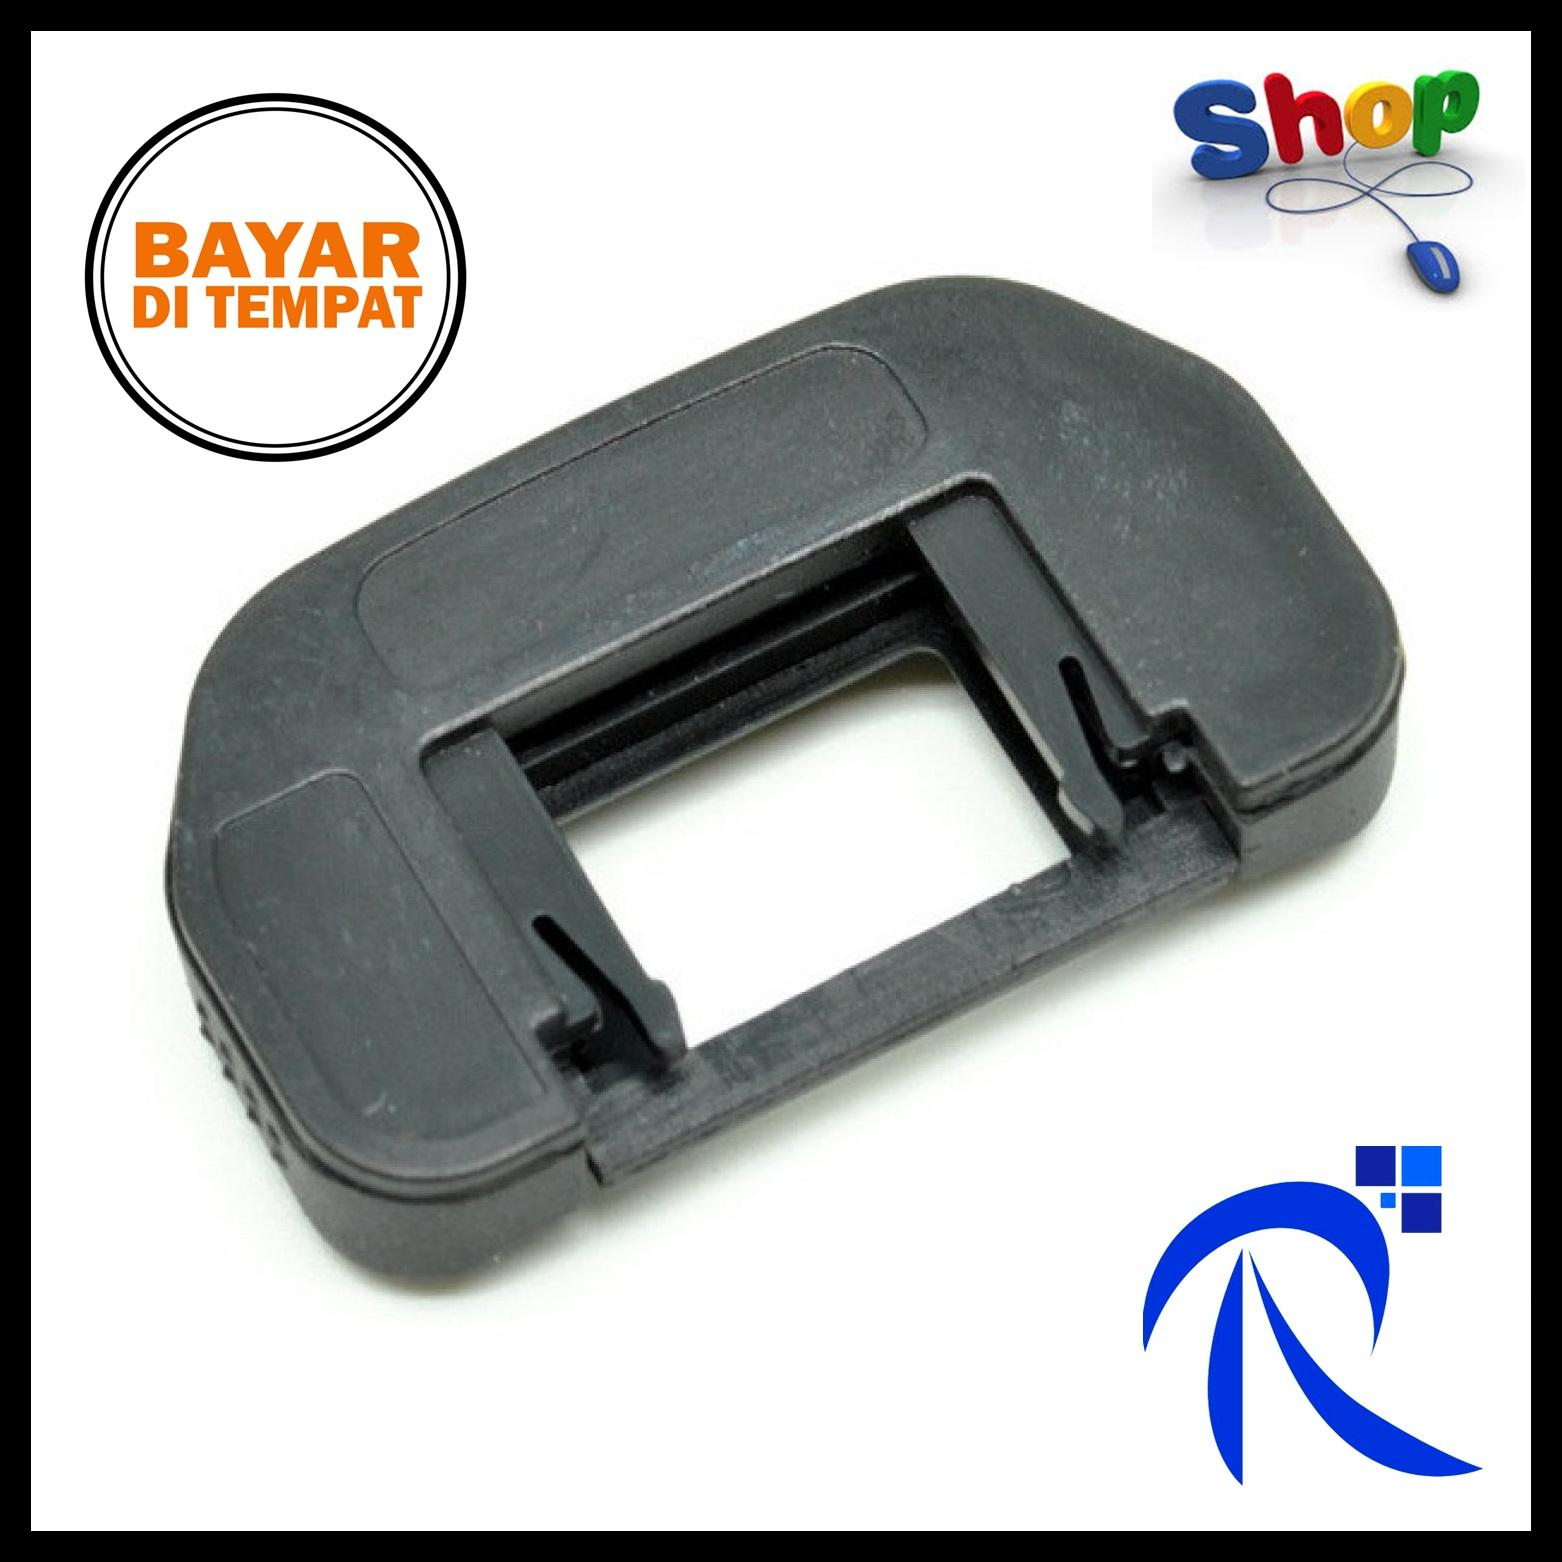 Rimas Eyecup EF for Canon DSLR - Black / Hitam - Karet Pelindung Viewfinder View Finder Eye Cup Area Mata Kamera Camera Berkualitas FREE ONGKIR